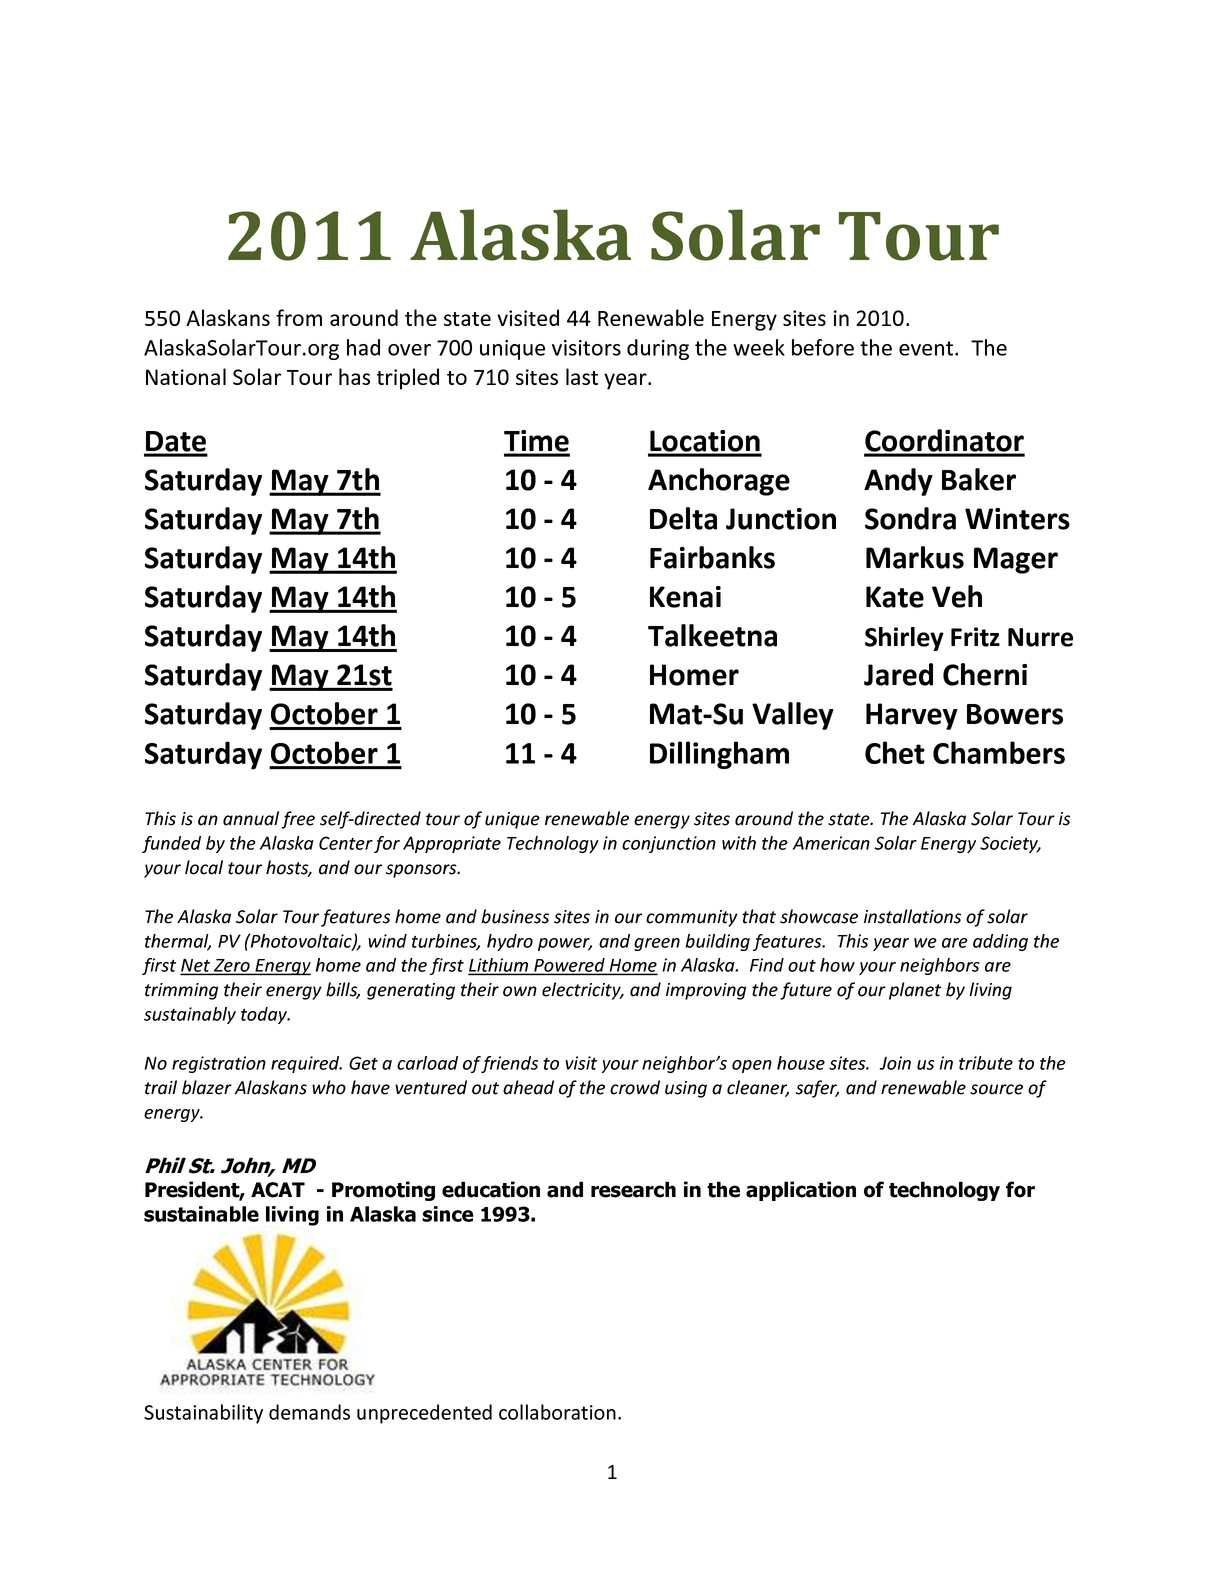 Calamo 2011 Alaska Solar Tour 28 2010 A Compact And Portable 12v Power Inverter Circuit That